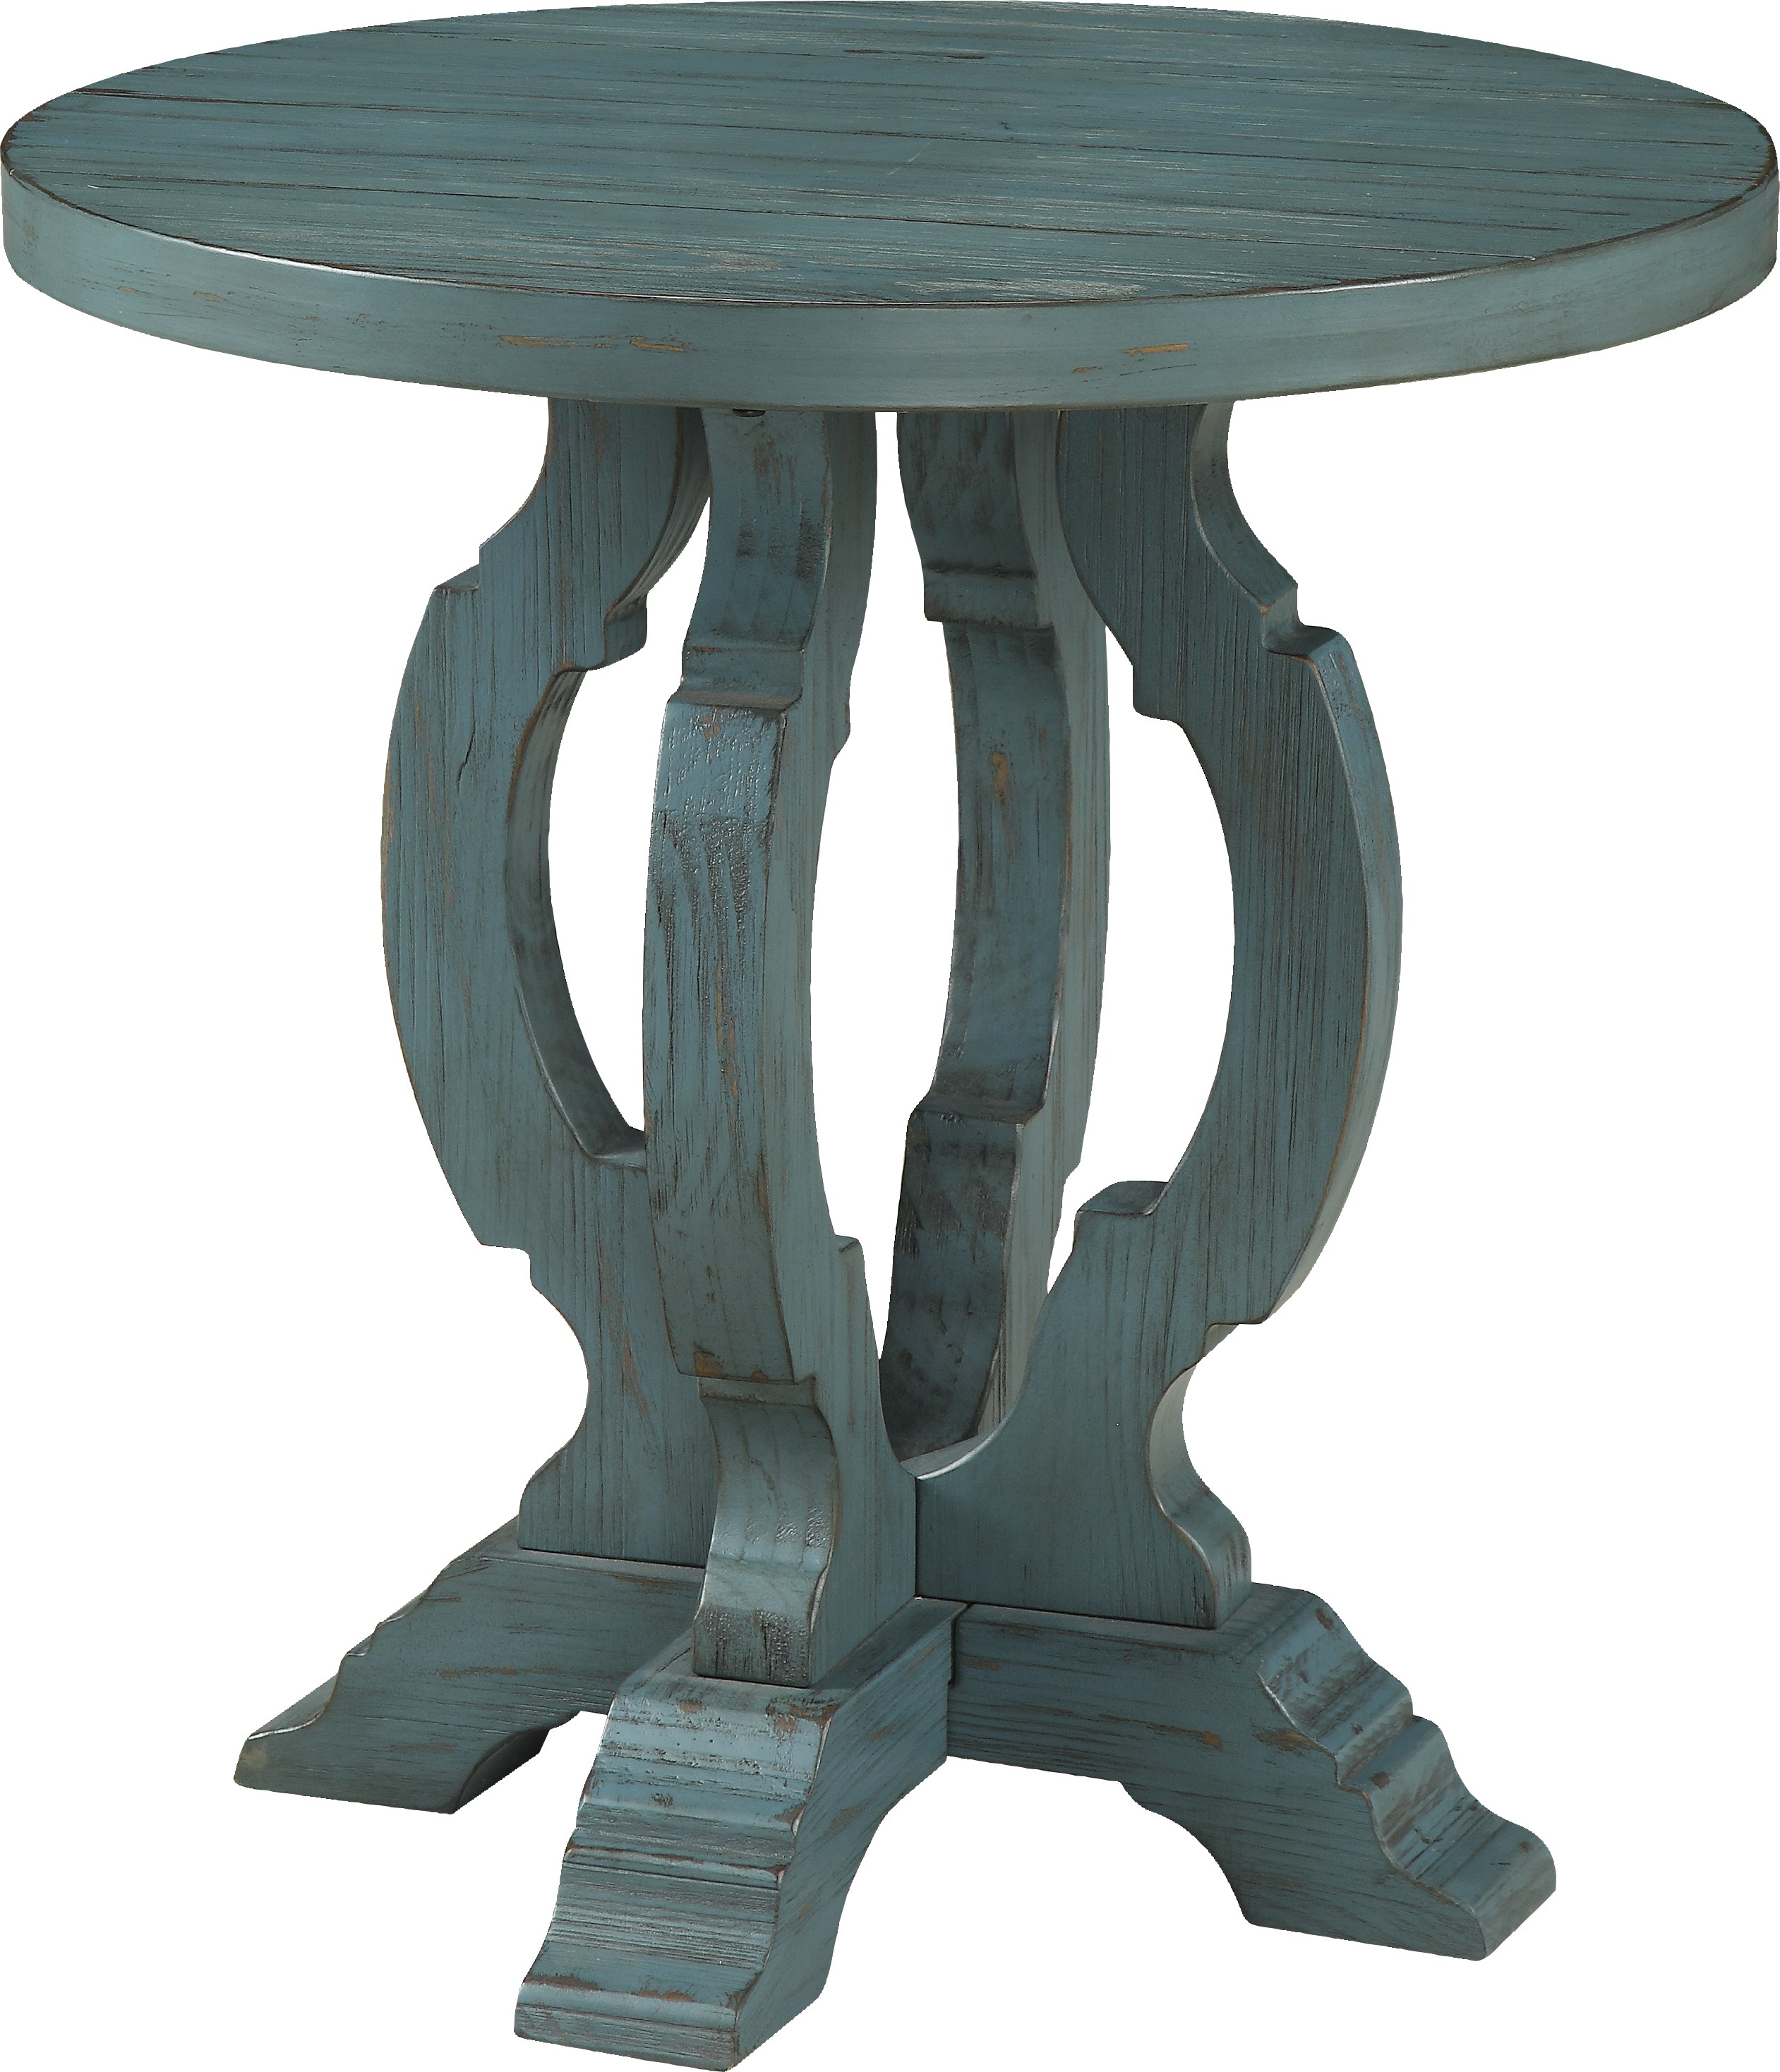 orchard park teal accent table tables colors orchardpark small mirrored nightstand ikea black cube storage round wooden dining decor ideas tread plates door thresholds west elm